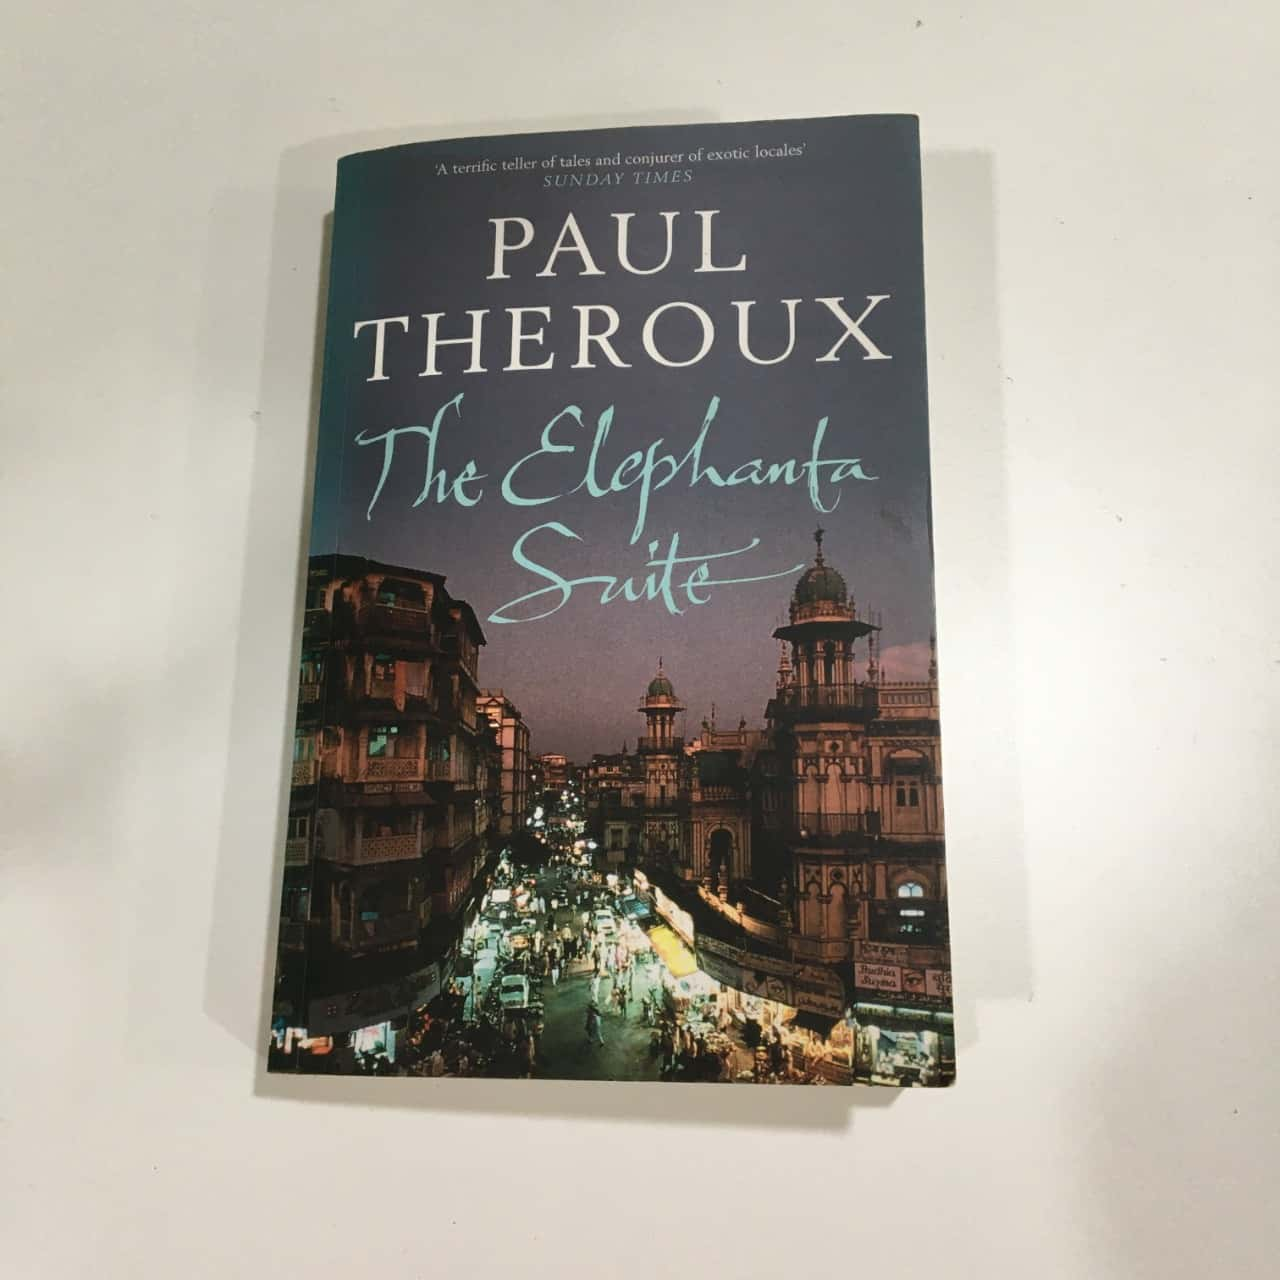 The Elephant Suite by Paul Theroux